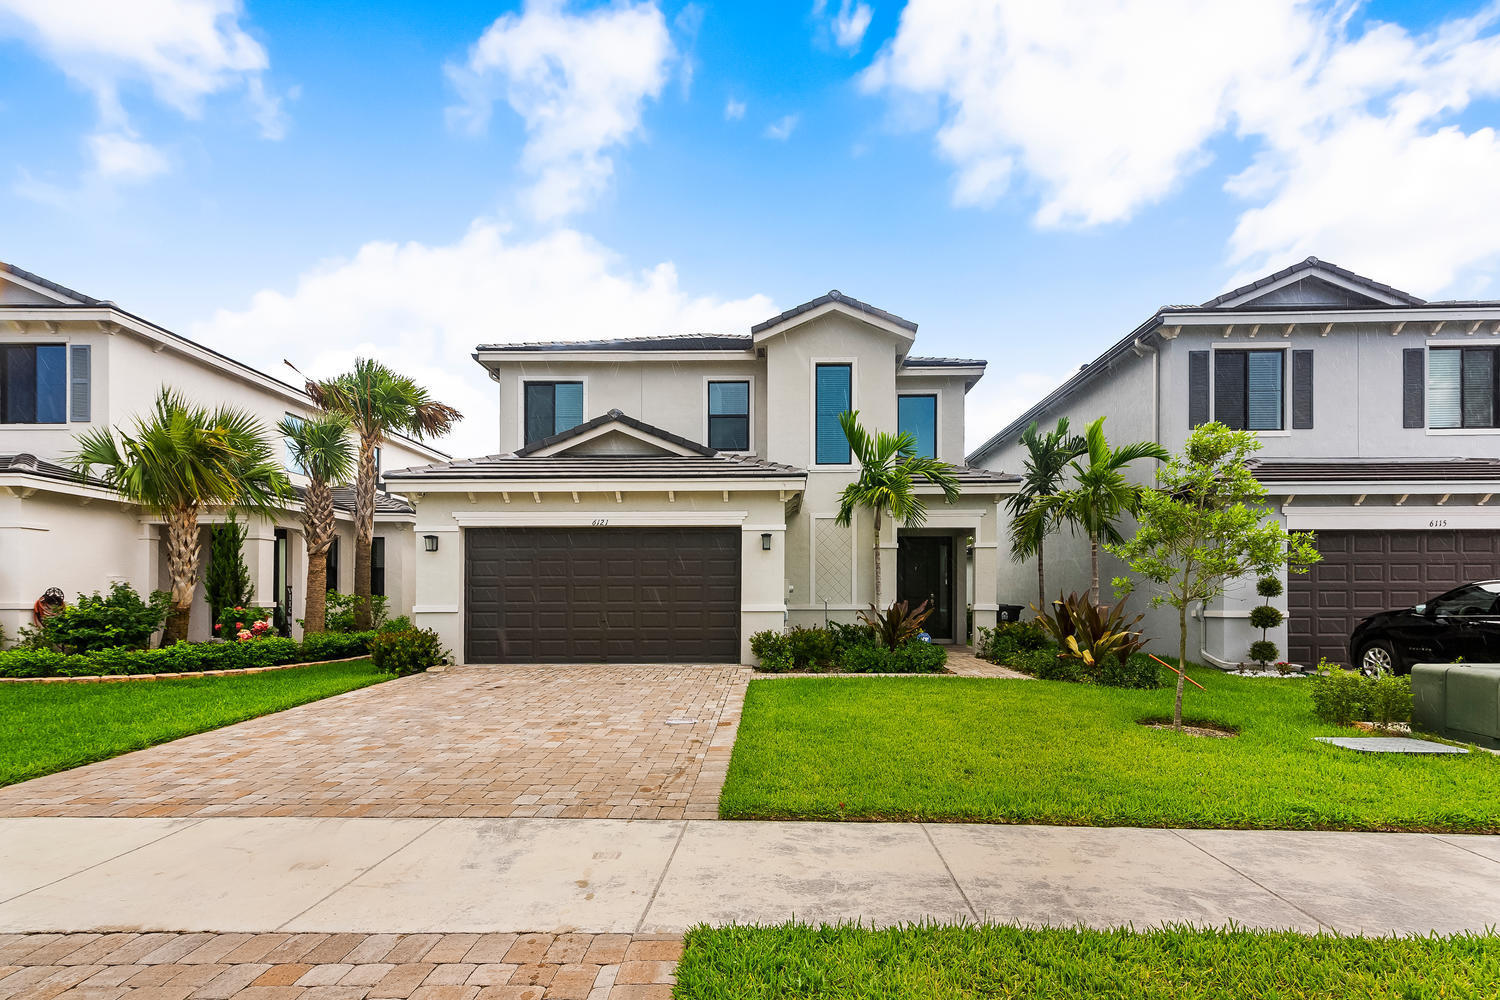 Home for sale in Silver Leaf Lake Worth Florida